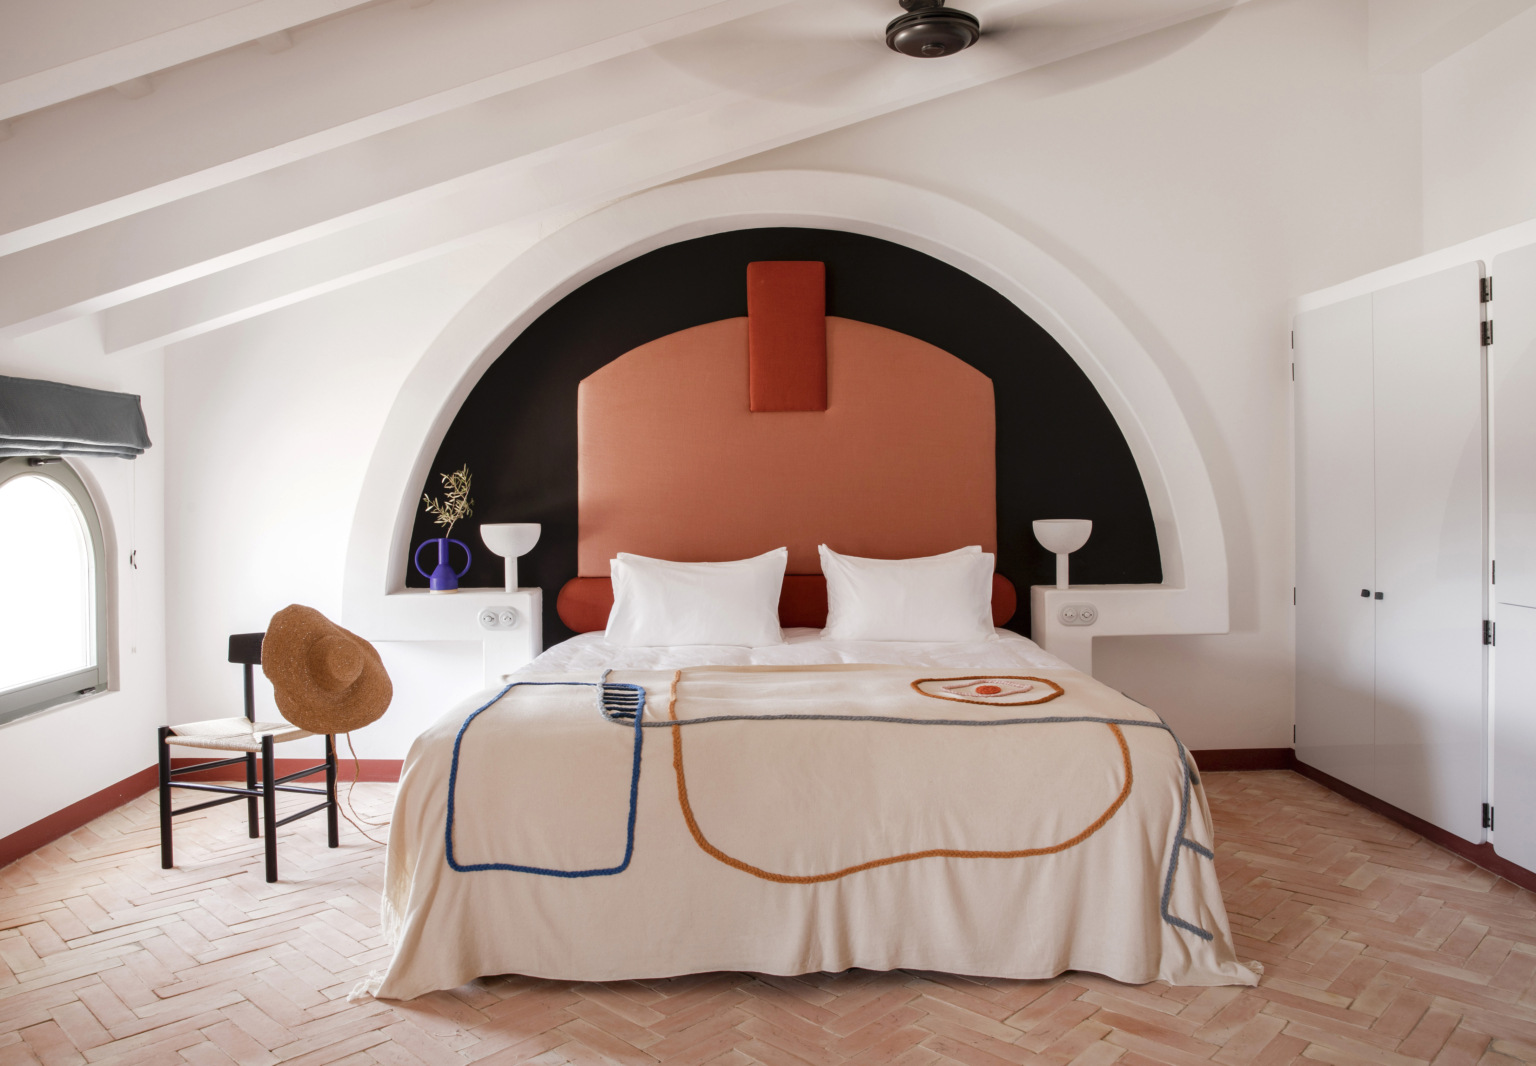 Menorca Experimental: Summer is Just Getting Going at this Chic New Resort